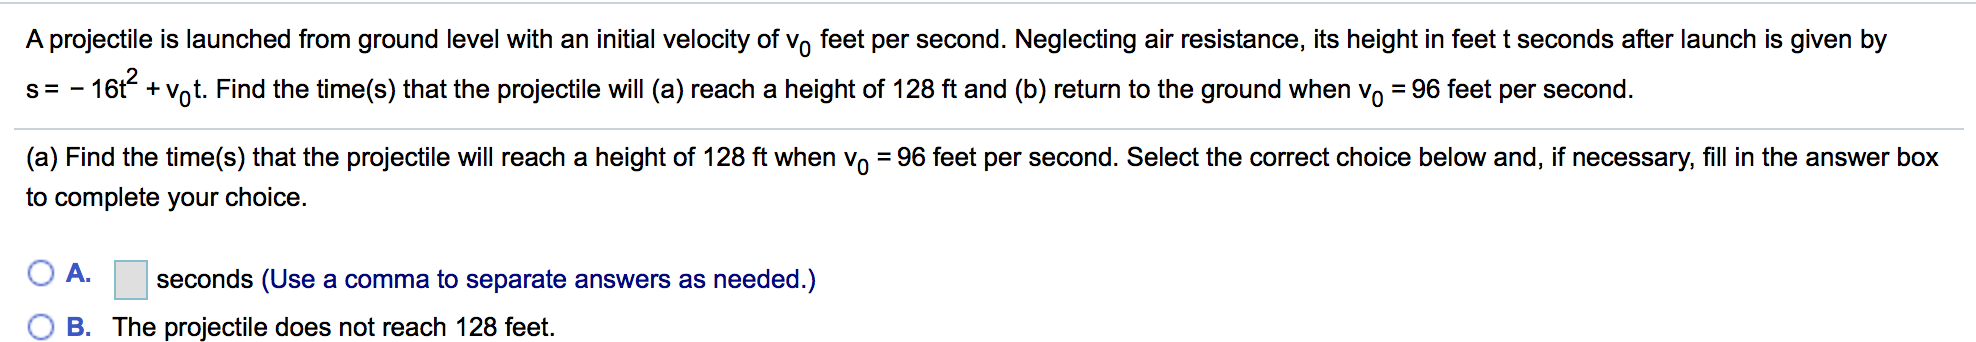 A projectile is launched from ground level with an initial velocity of vo feet per second. Neglecting air resistance, its height in feet t seconds after launch is given by s-16t+Vot. Find the time(s) that the projectile will (a) reach a height of 128 ft and (b) return to the ground when vo - 96 feet per second. (a) Find the time(s) that the projectile will reach a height of 128 ft when v0-96 feet per second. Select the correct choice below and. if necessary, fill in the answer box 2 to complete your choice. A· seconds (Use a comma to separate answers as needed.) B. The projectile does not reach 128 feet.